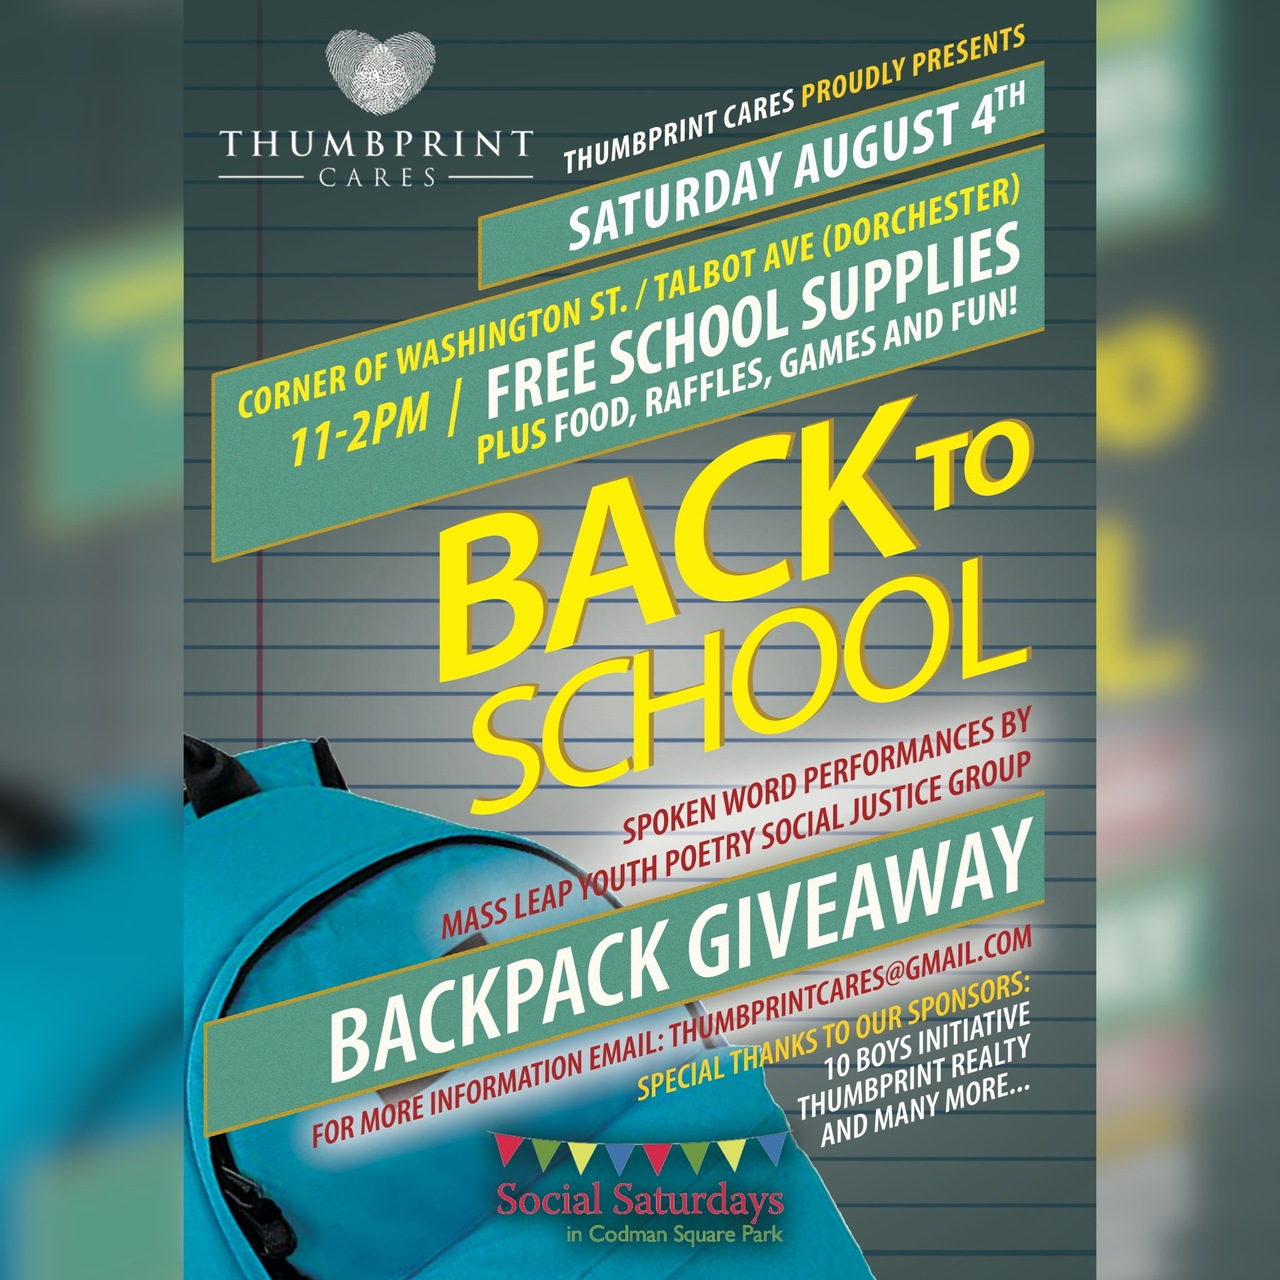 Thumbprint Cares: Back to School Backpack giveaway [08/04/18]